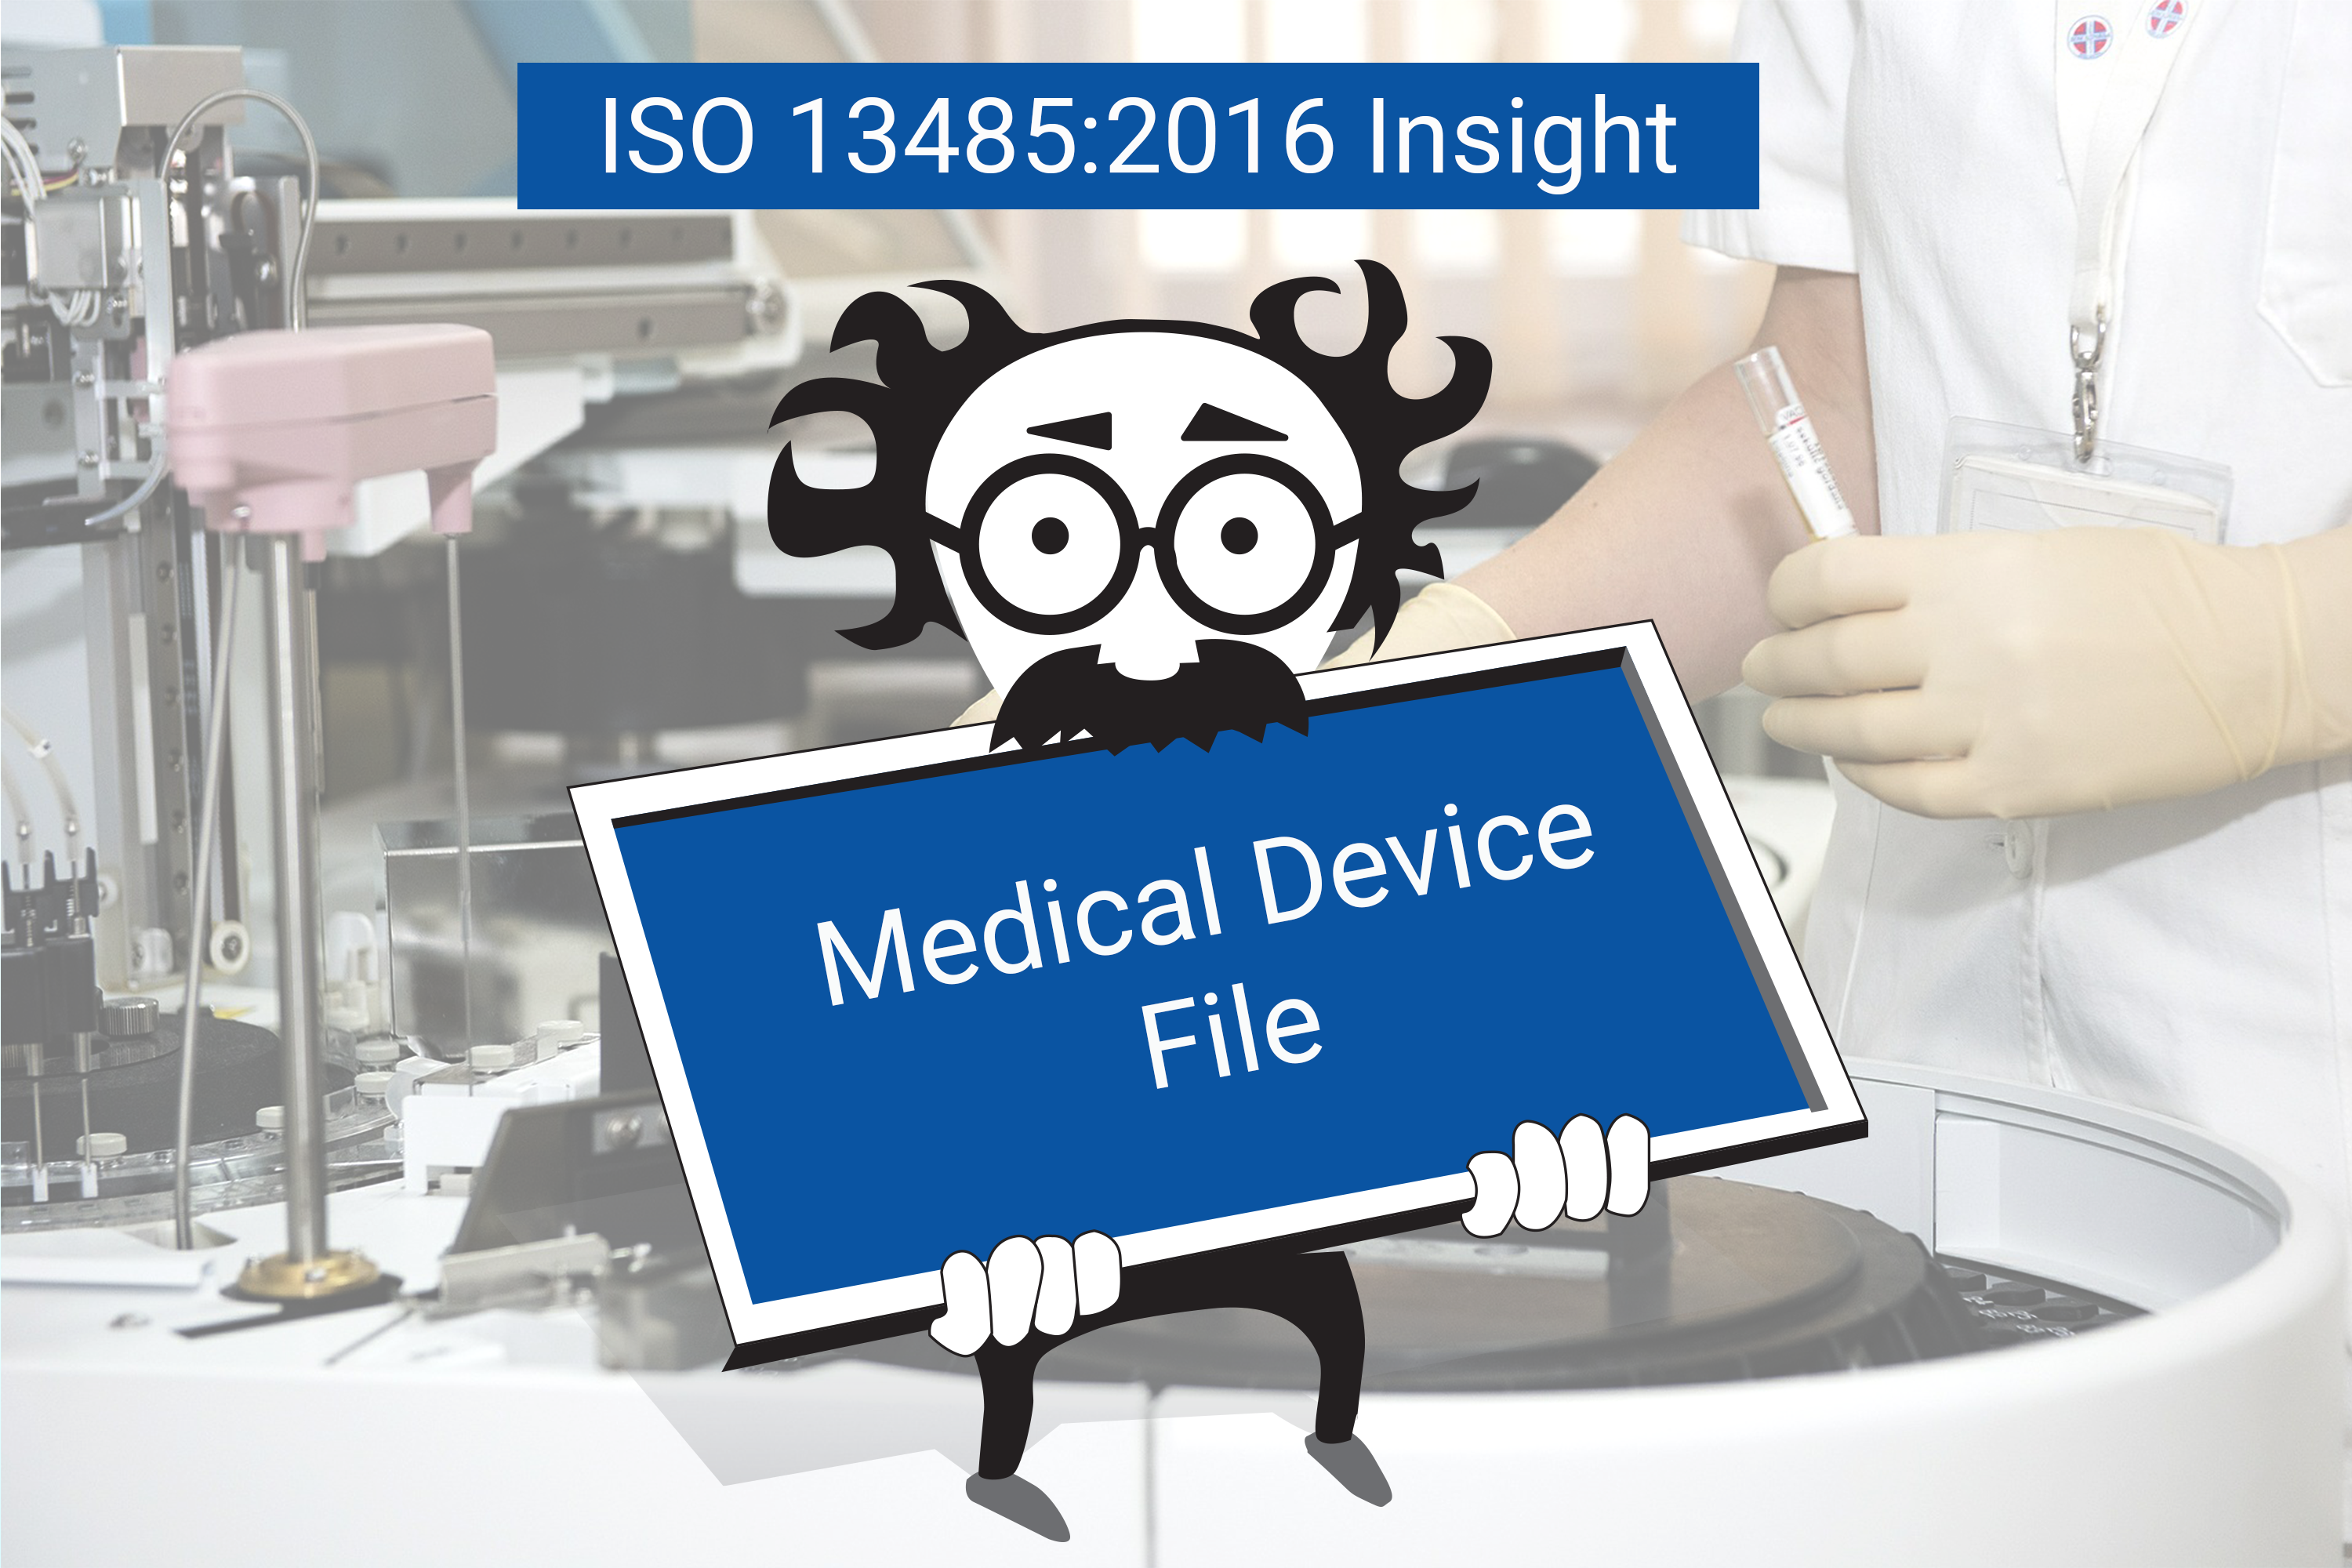 ISO 13485:2016 Insight: Medical Device File